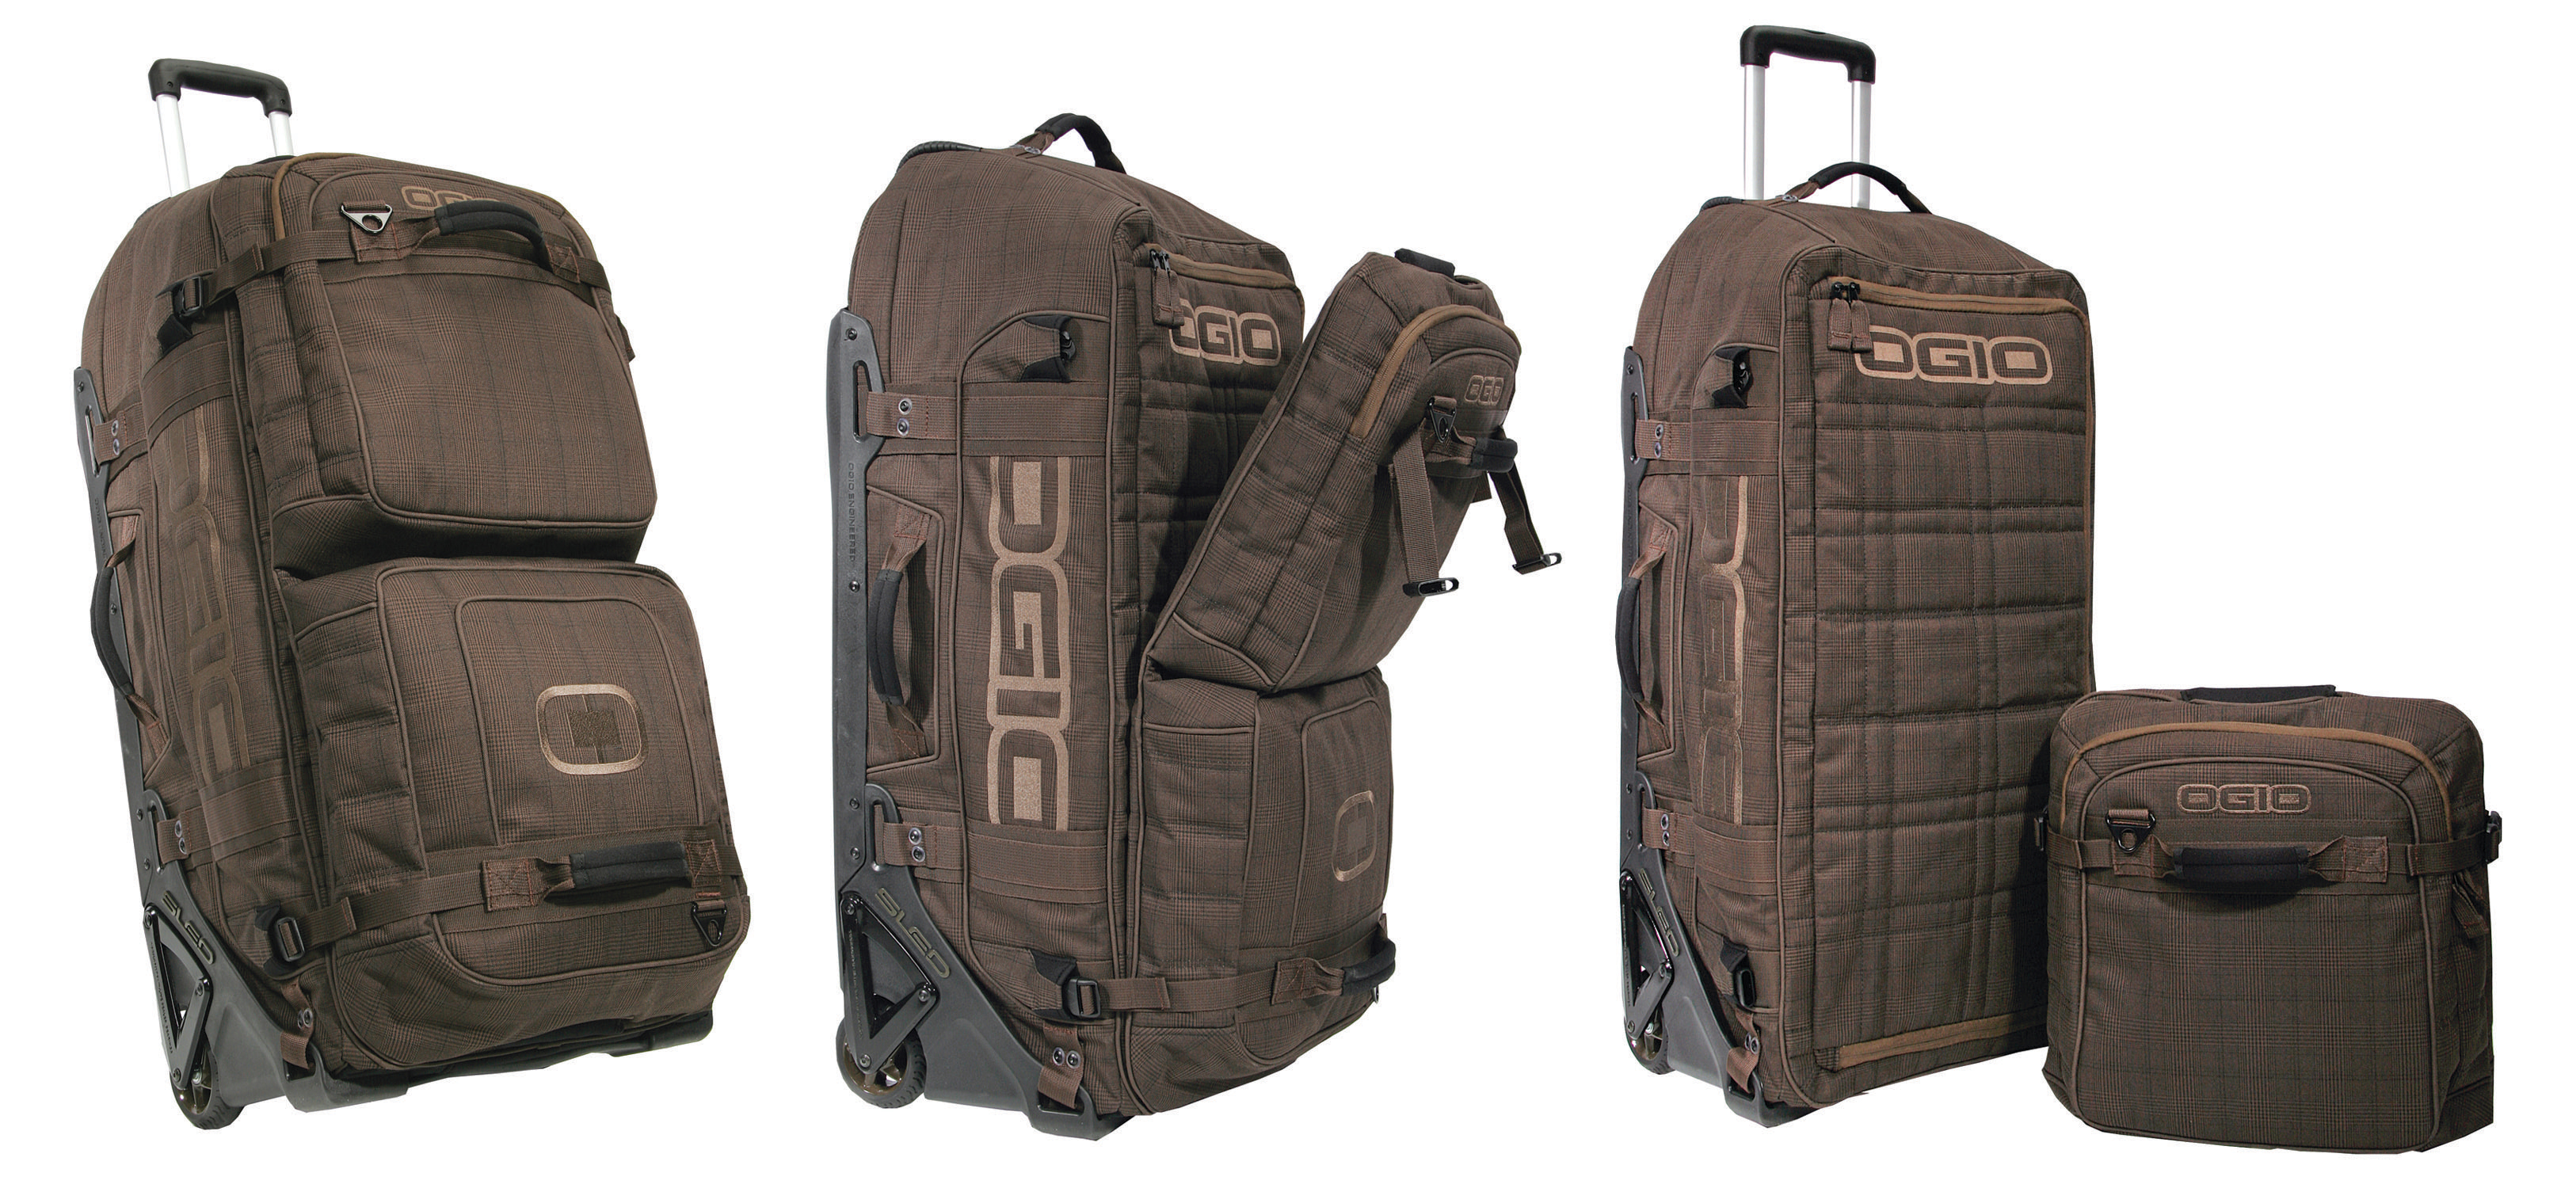 Ogio Bus travel bag